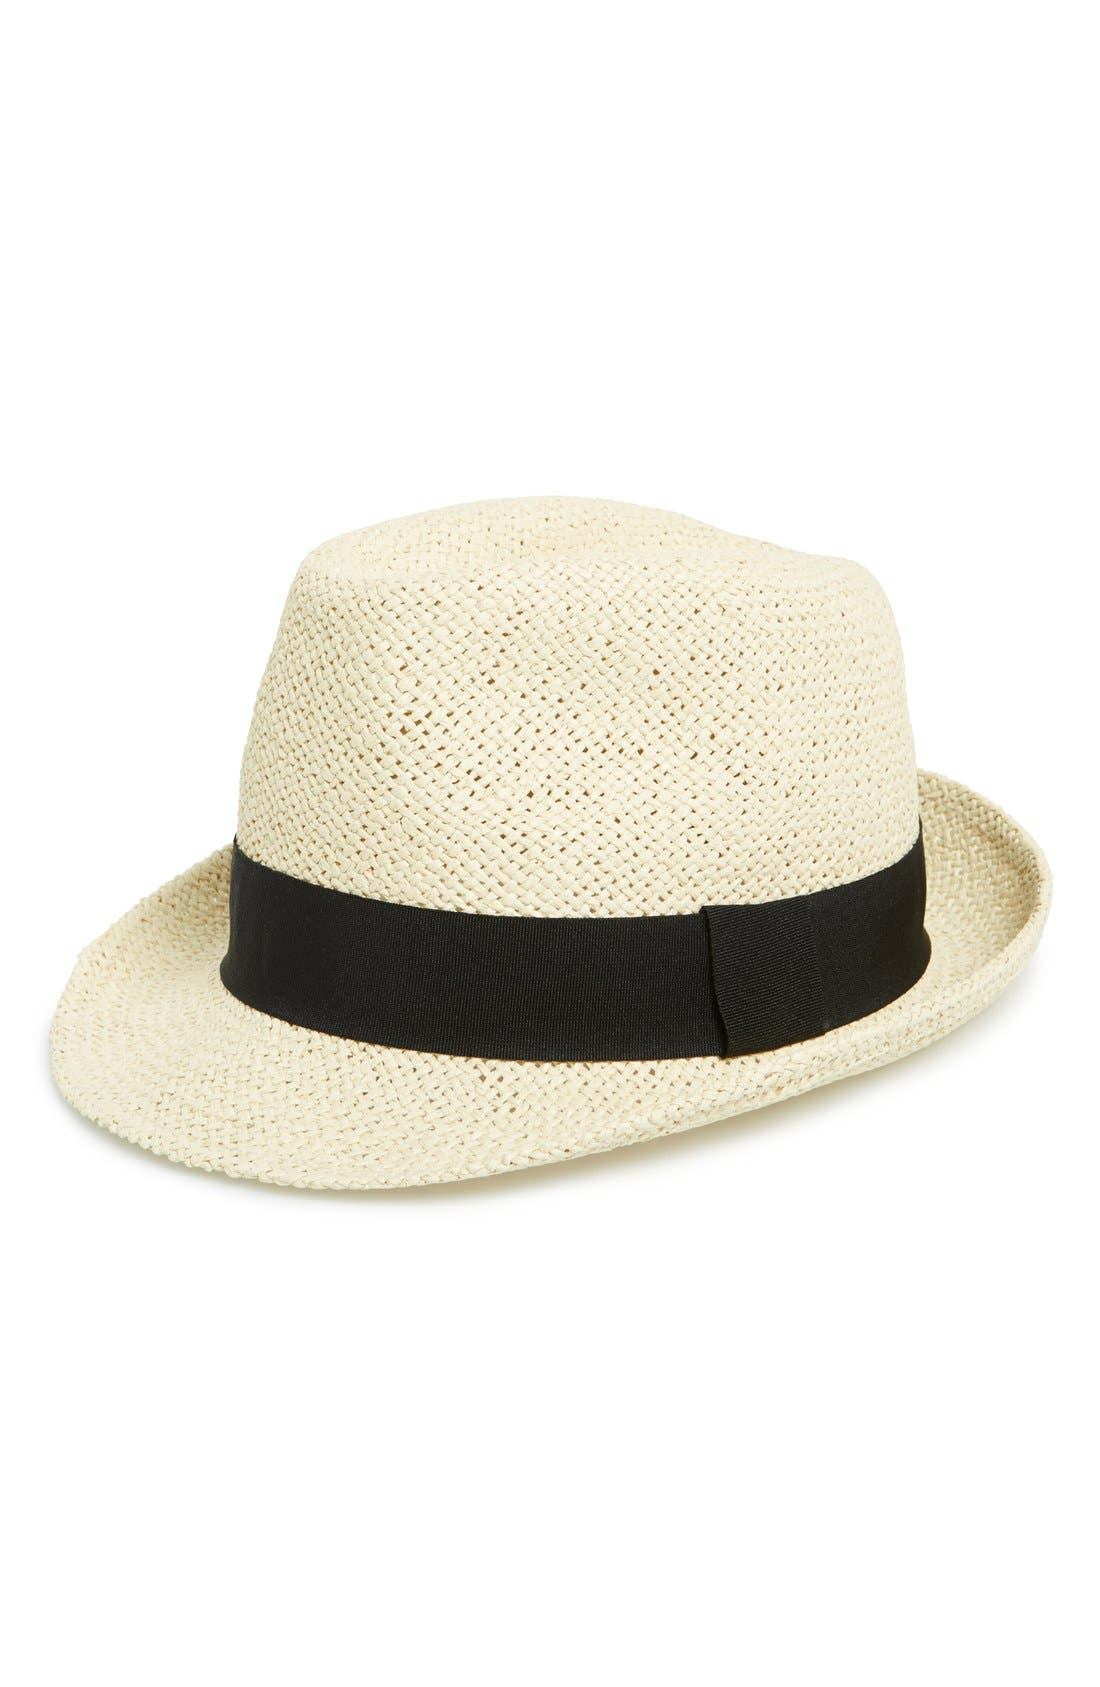 Main Image - BP. Straw Fedora